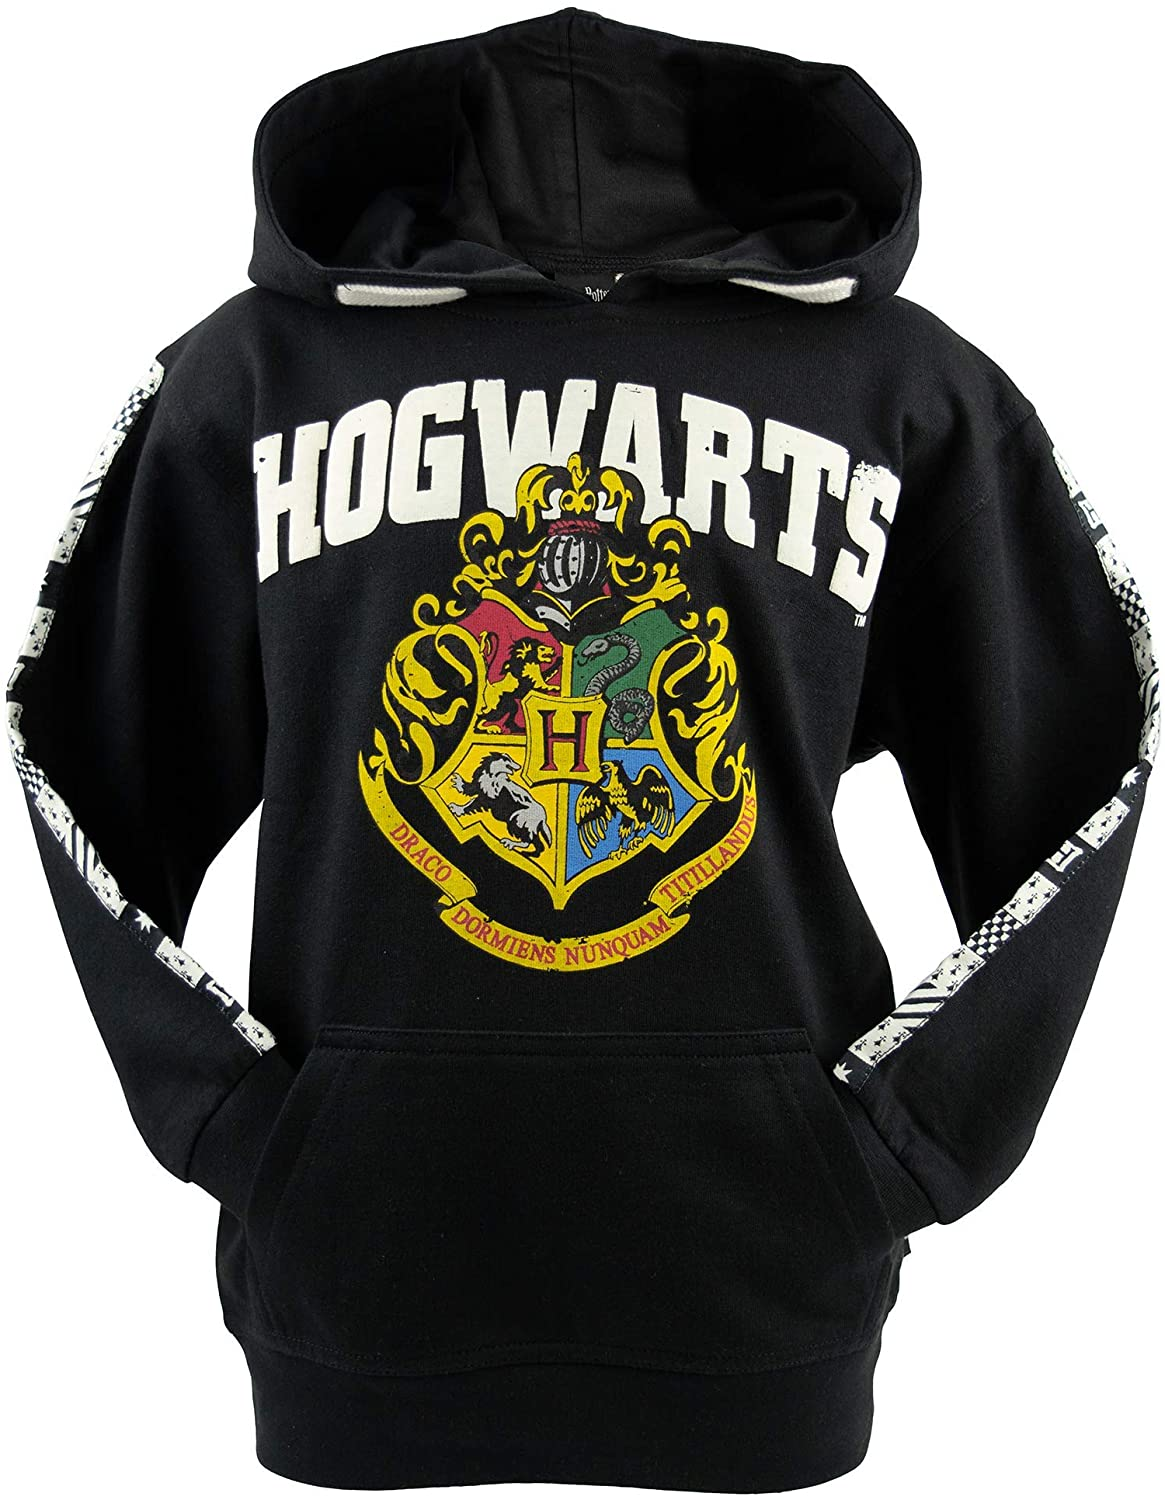 Licensed Unisex Kids Harry Potter Hogwarts Hoodie sizes 1 year to 13 years (1-2)